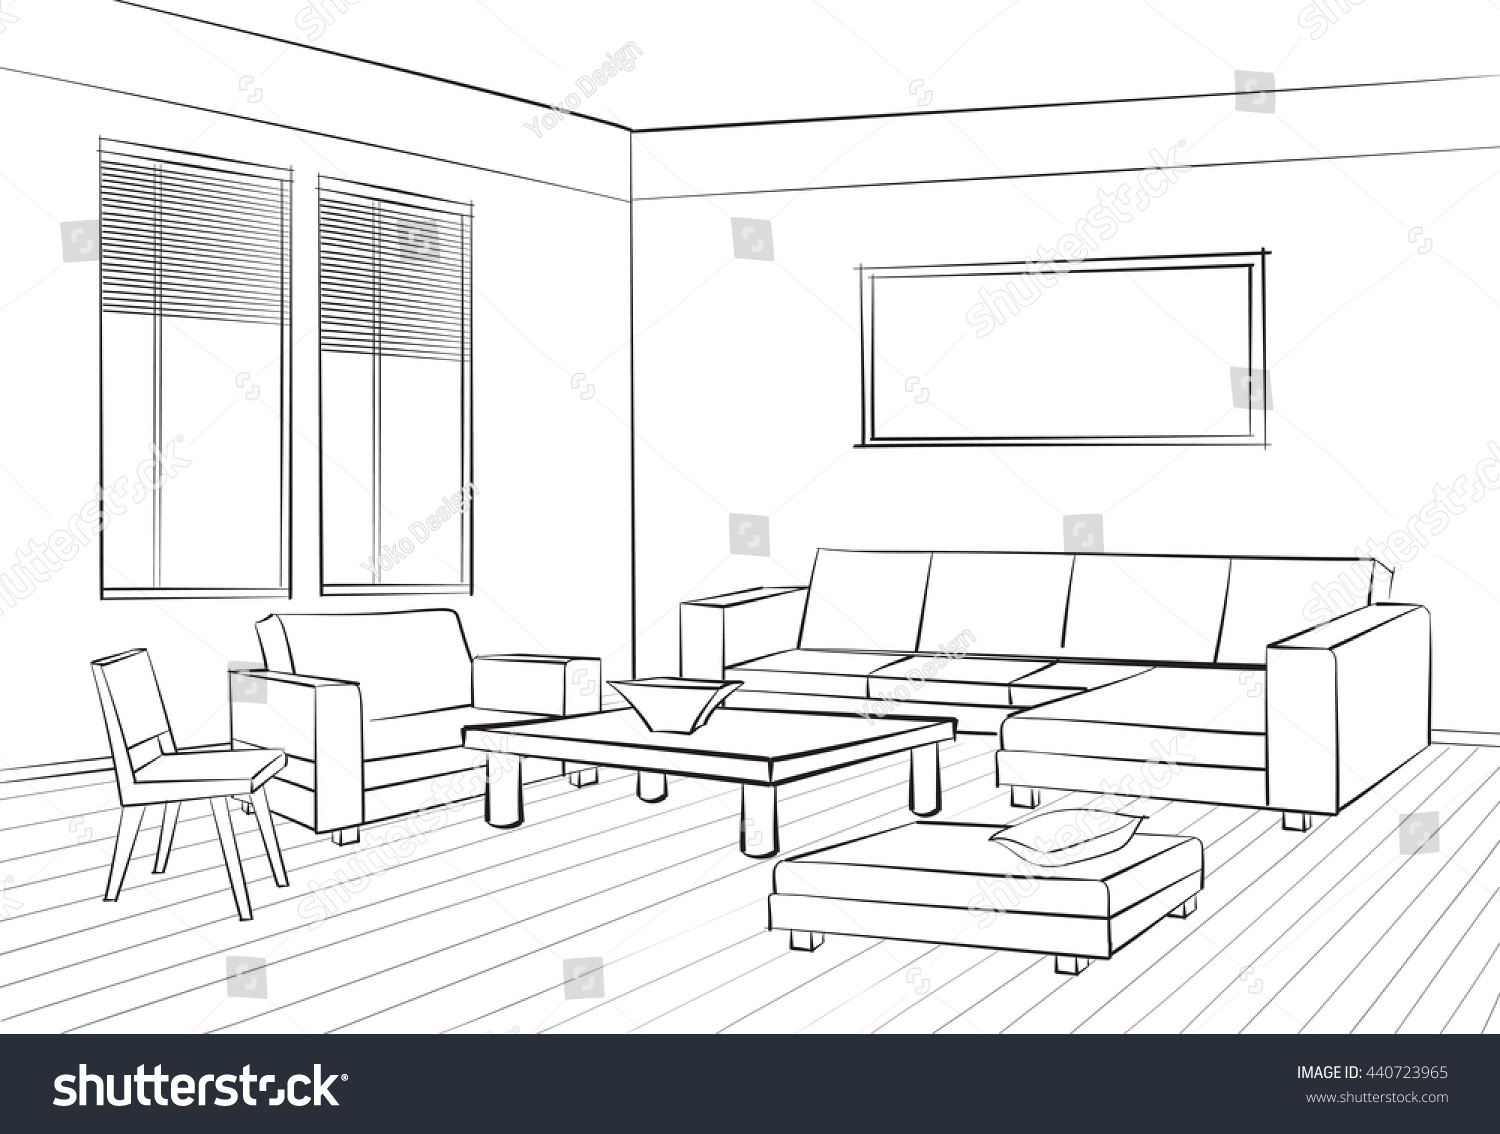 Home interior furniture sofa armchair table stock vector for Home drawing room design